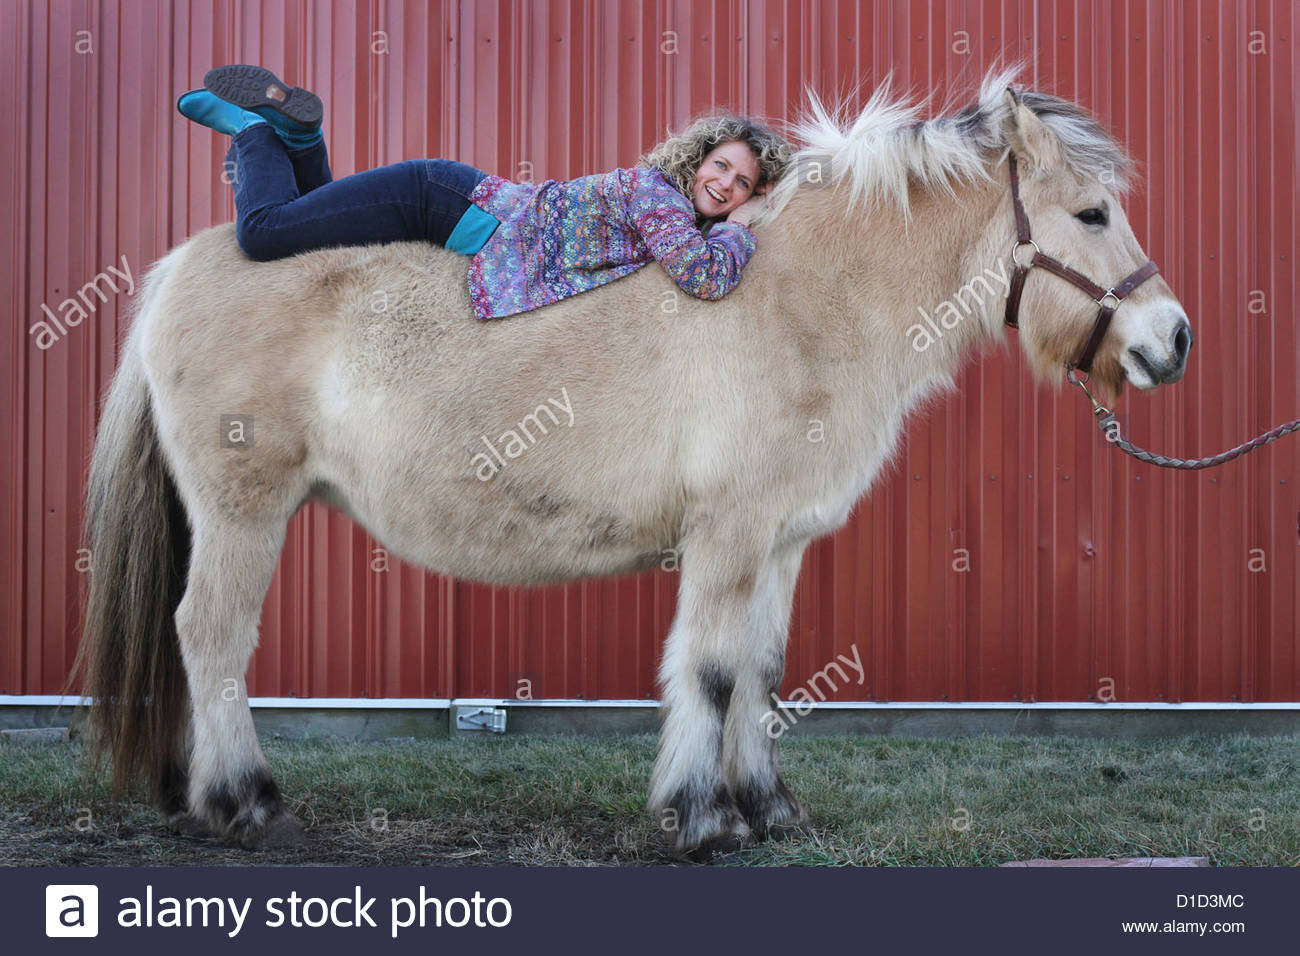 A woman lying down on a draft horse. - Stock Image